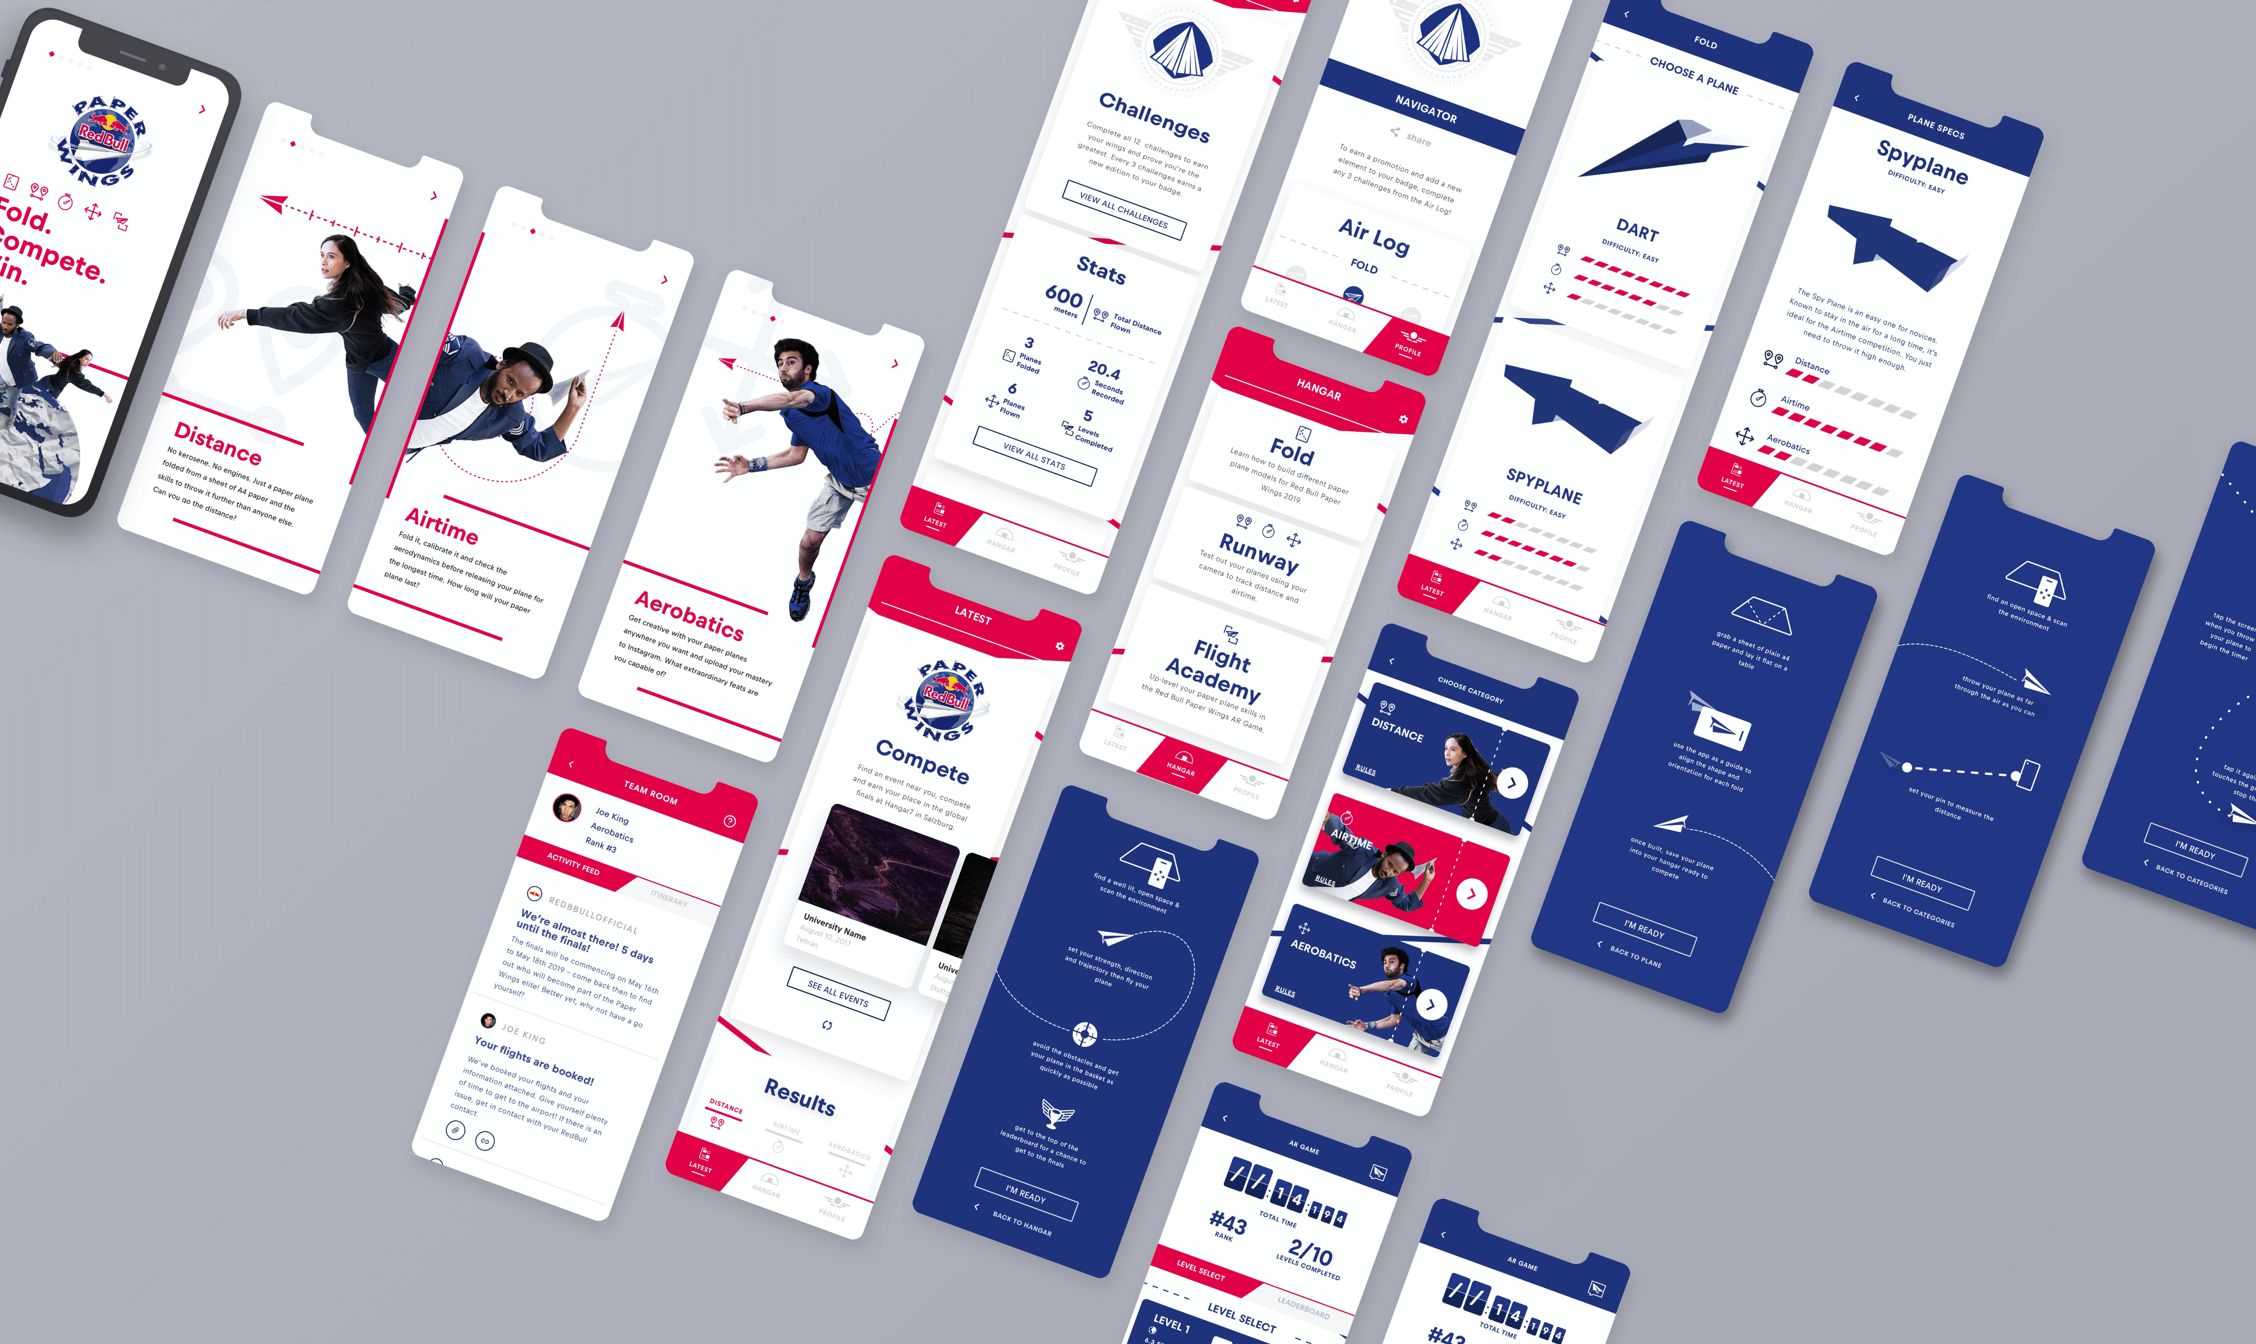 Angled shots of the many screens of the mobile app